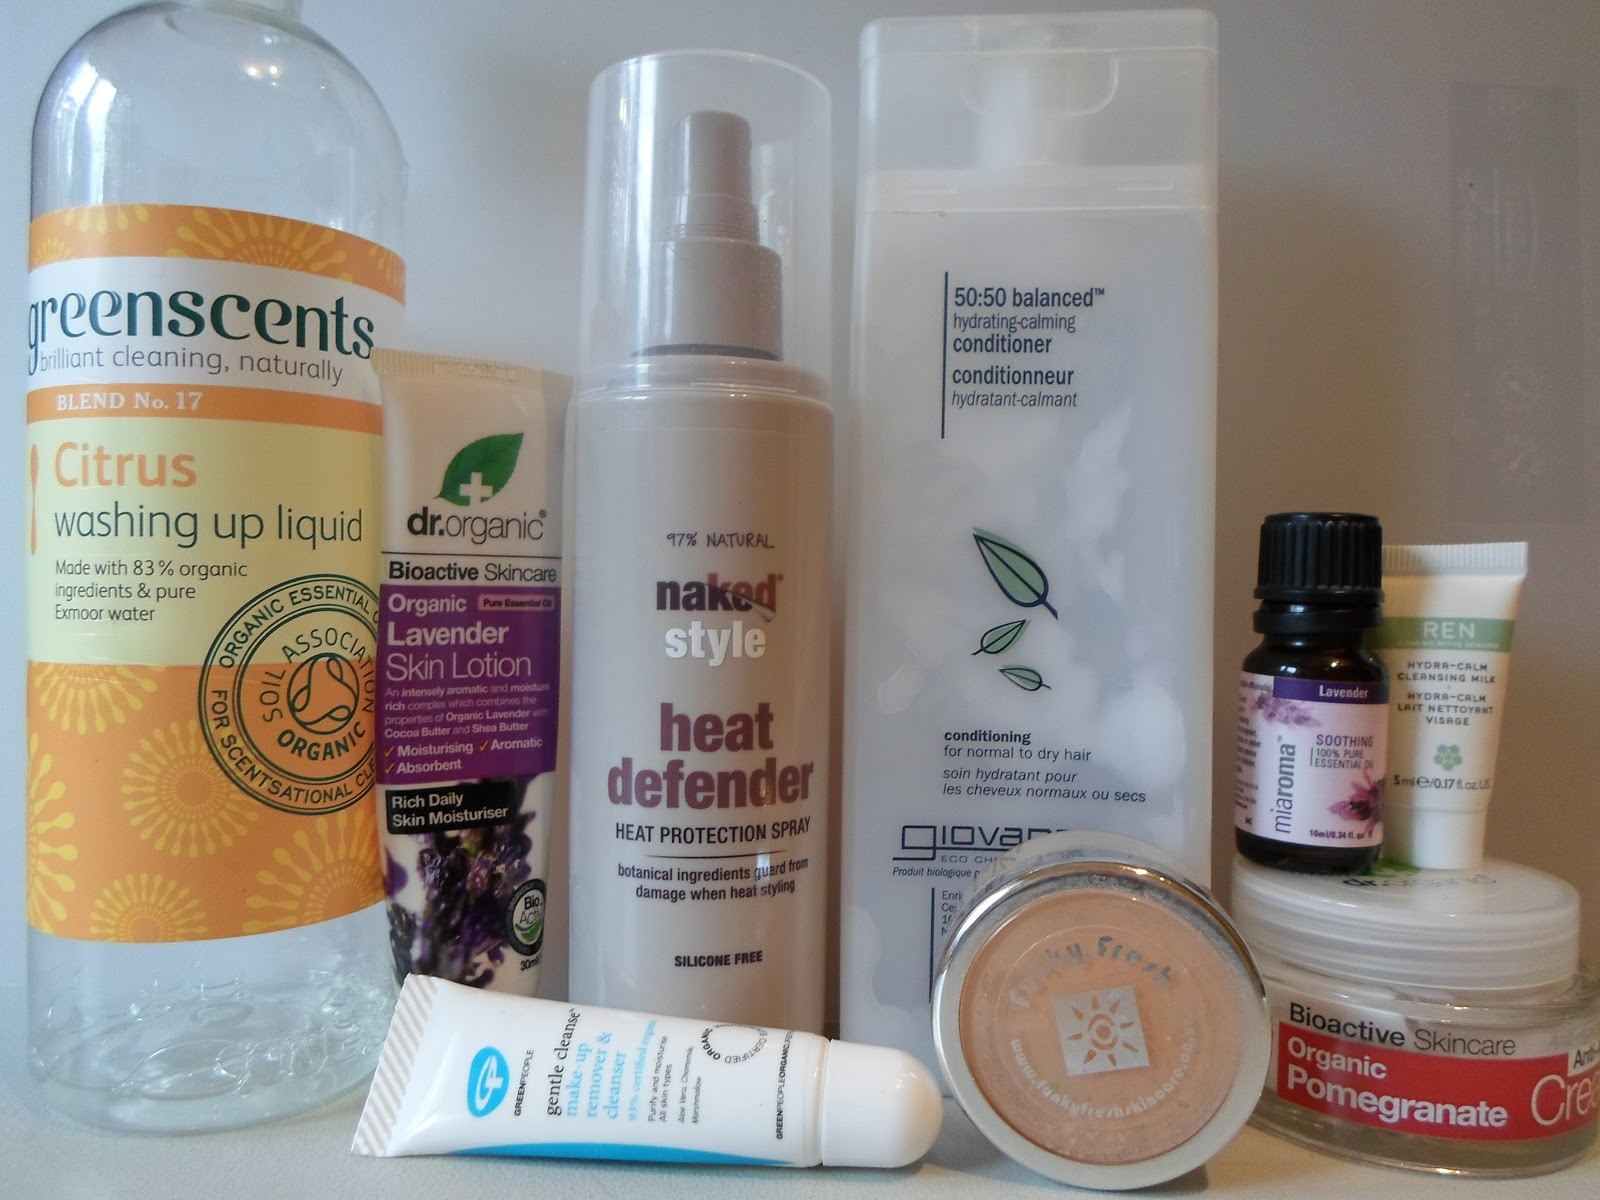 November Empties featuring Greenscents, Green People, Dr Organic, Giovanni